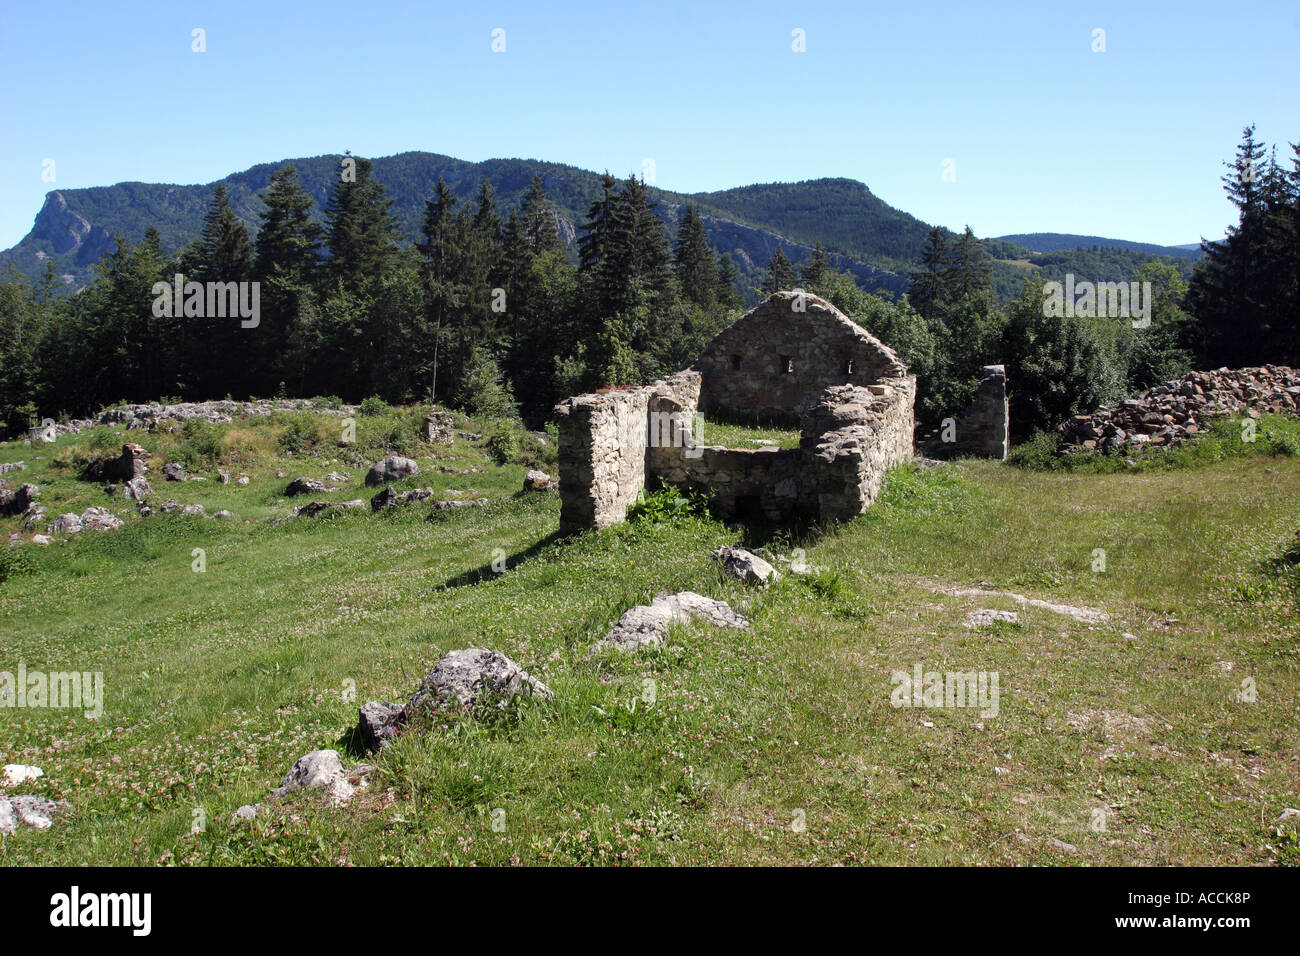 Ruined Building at Valchevriere a Village Destroyed in WW2 by the Germans in the Vercors Natural Park France - Stock Image